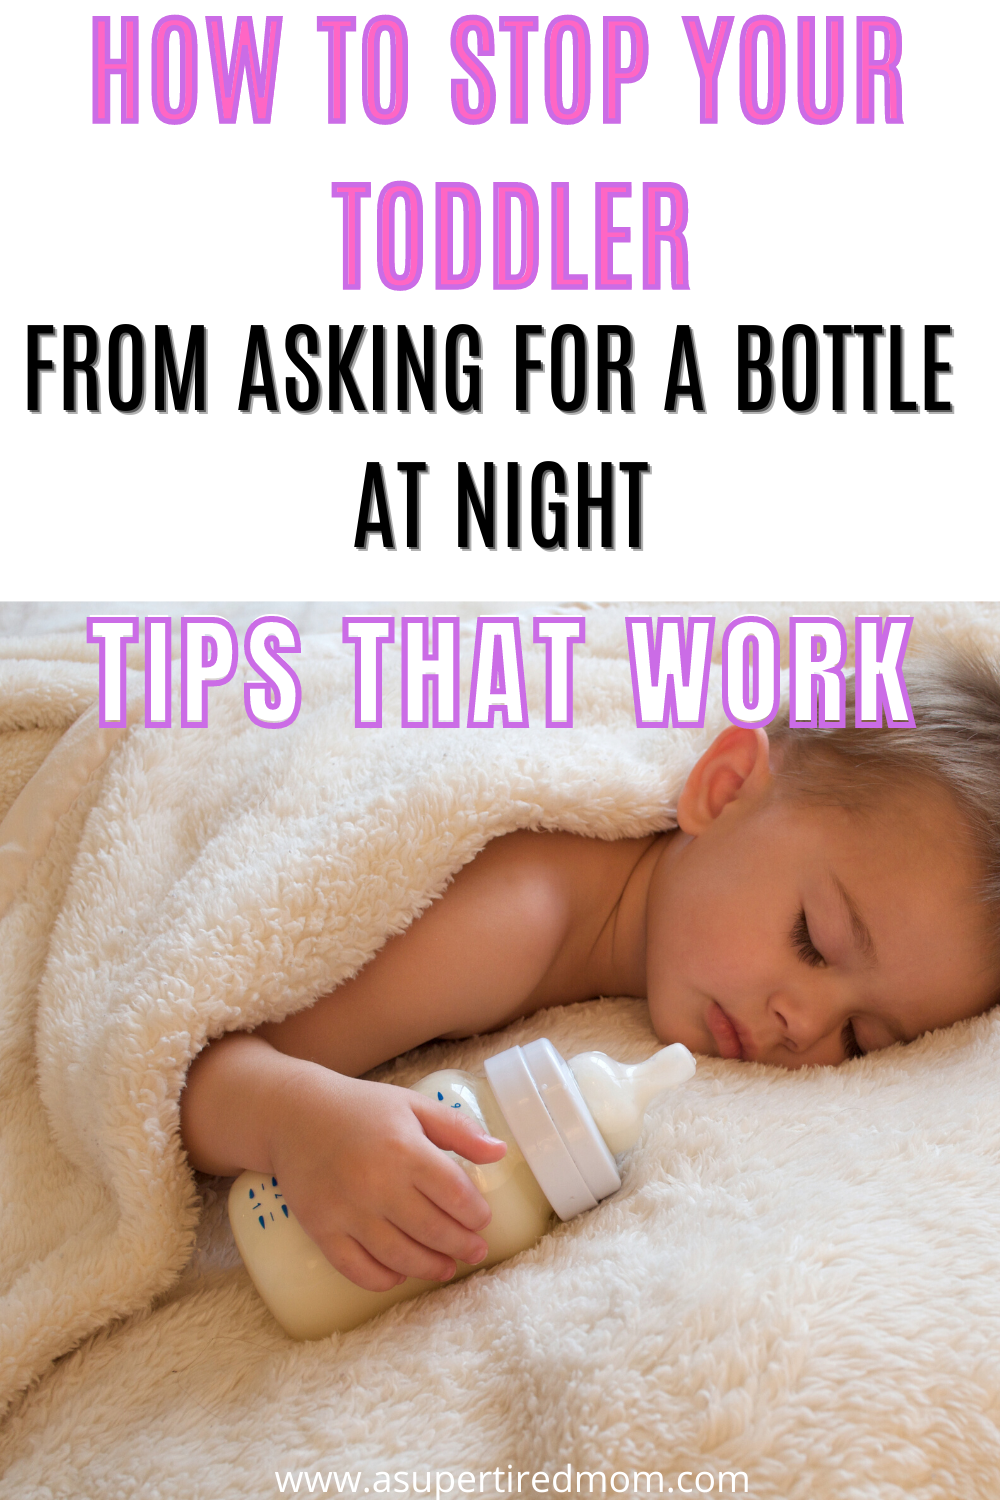 How To Get My 2 Year Old Off A Bottle